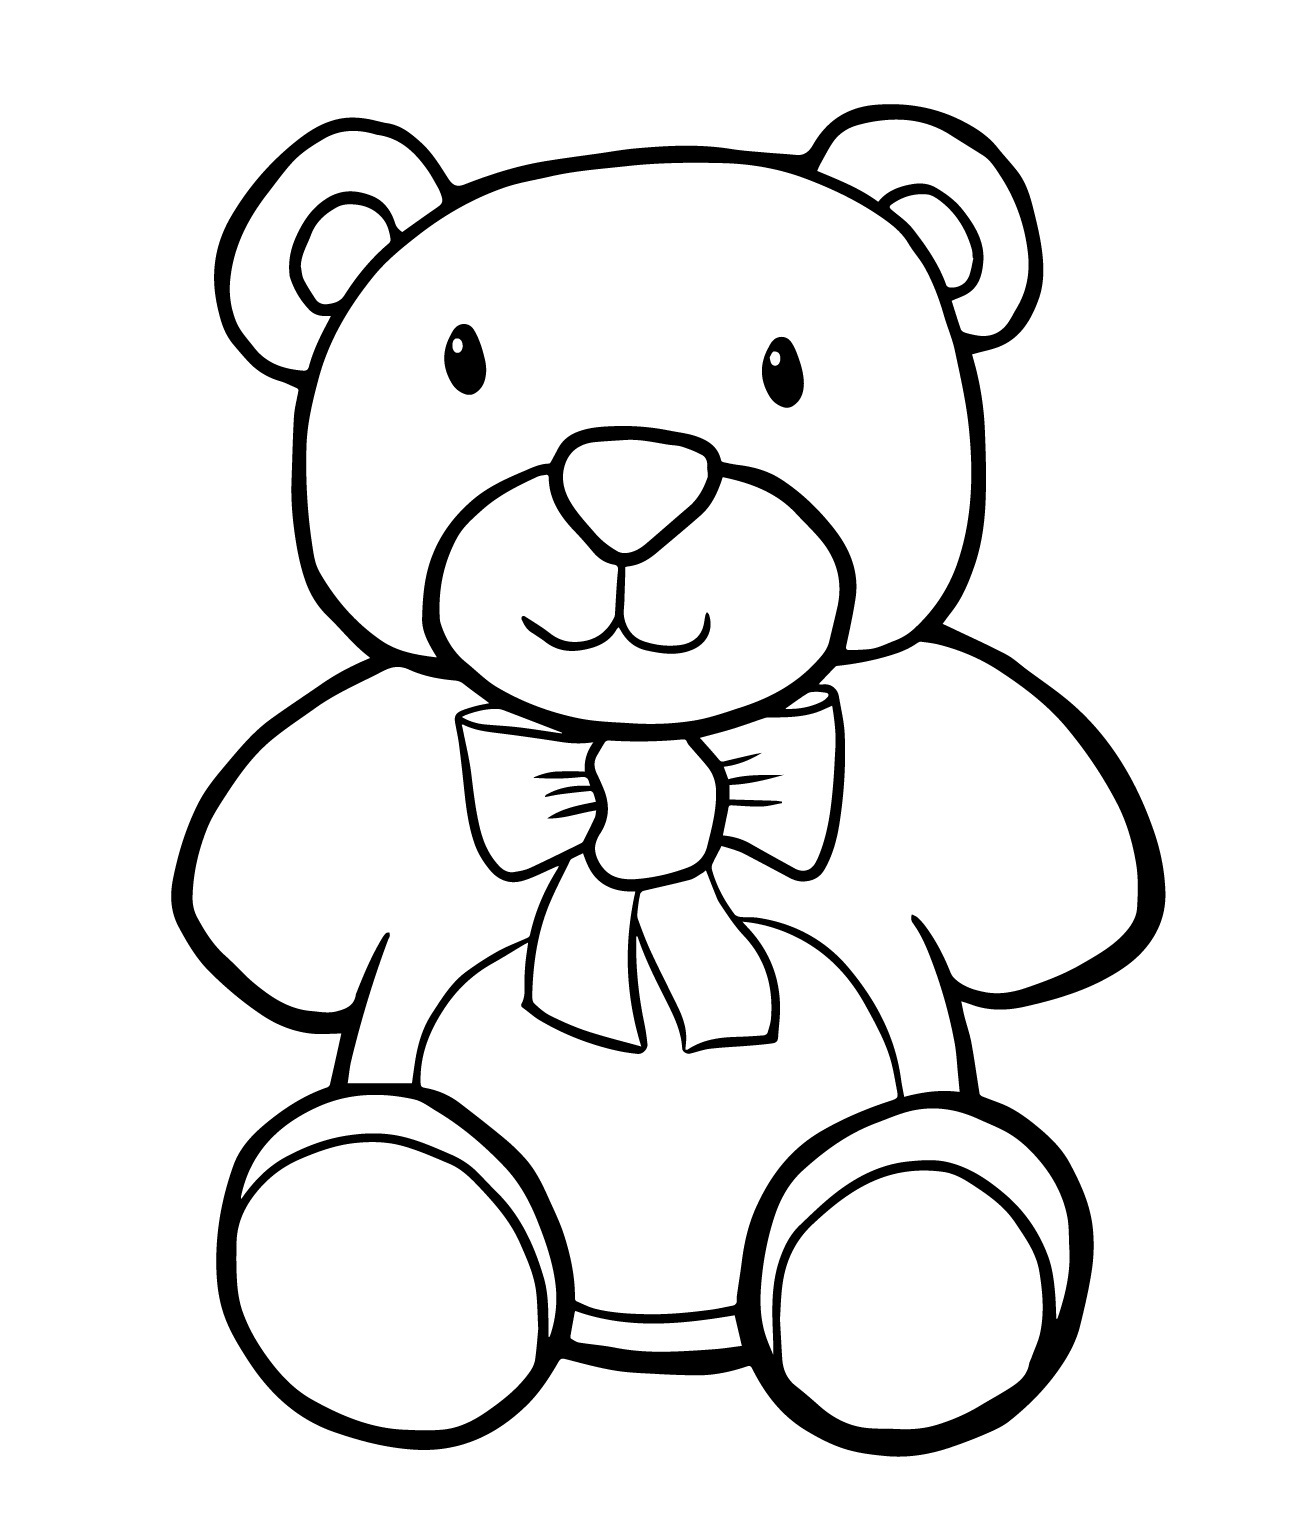 Image result for teddy bear coloring sheet